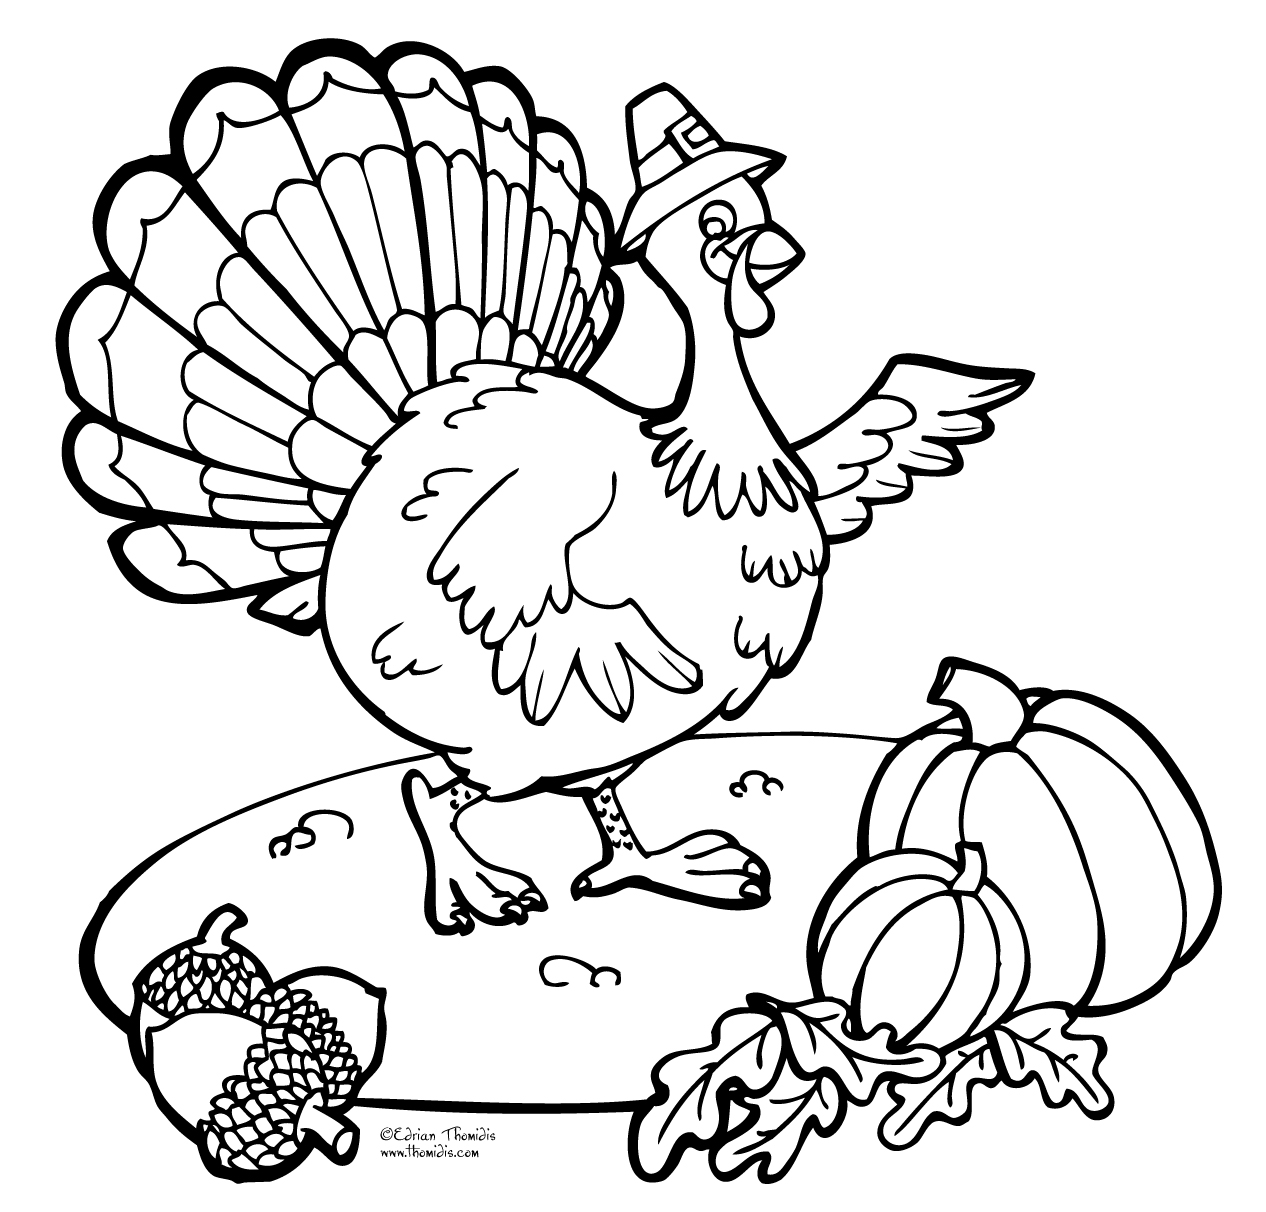 hanksgiving coloring pages - photo#11